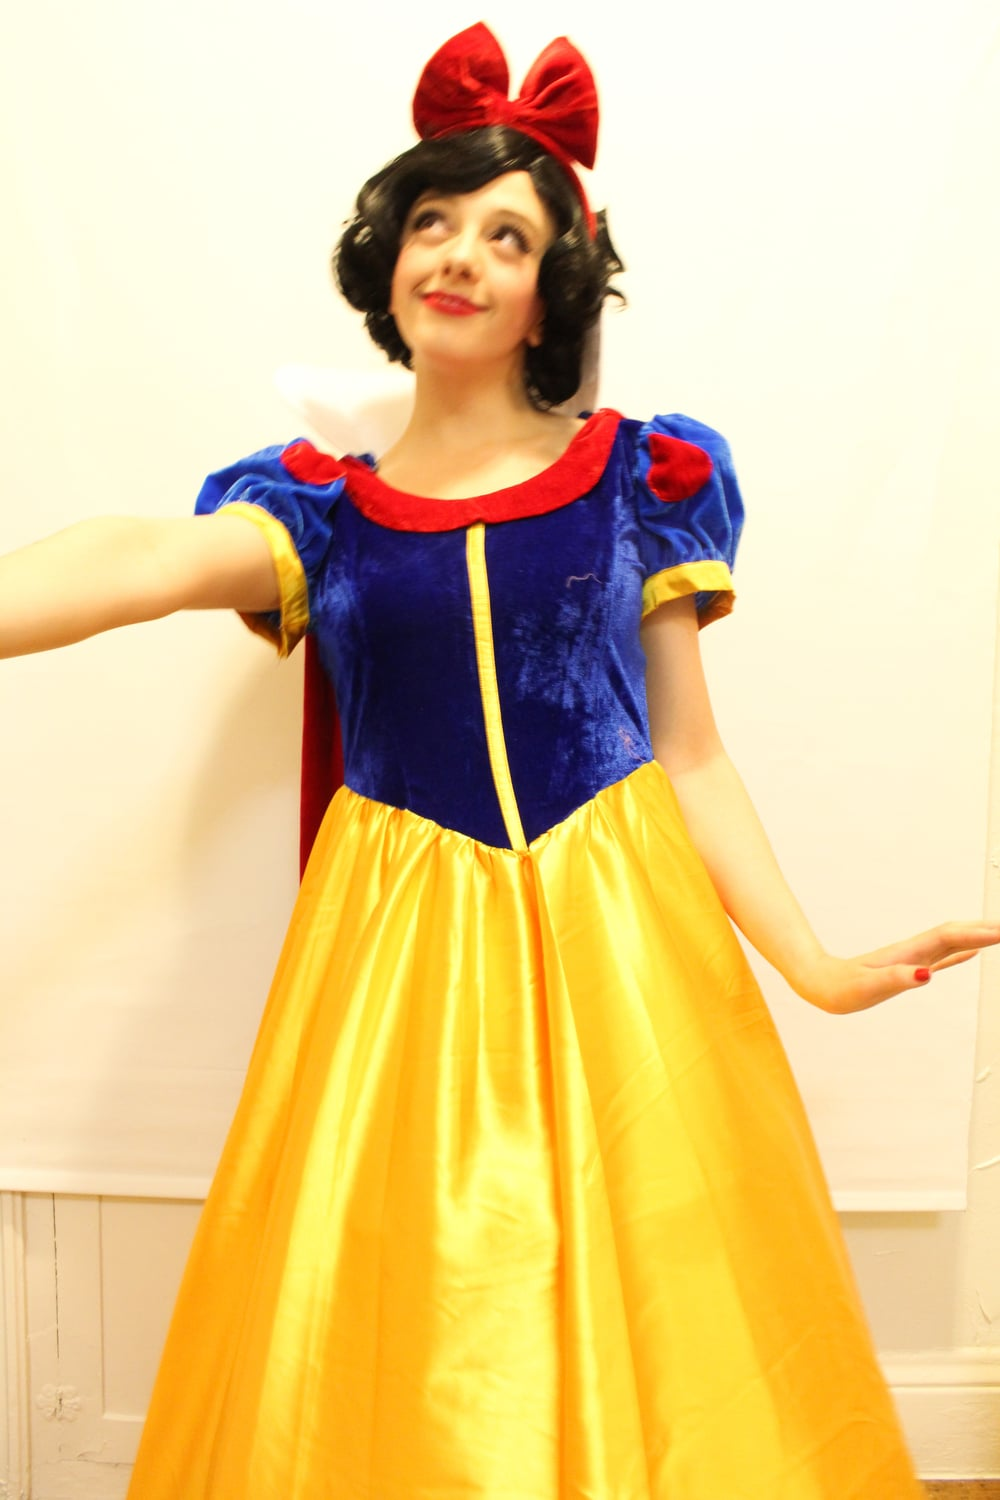 princess Snow white edited 3.jpg